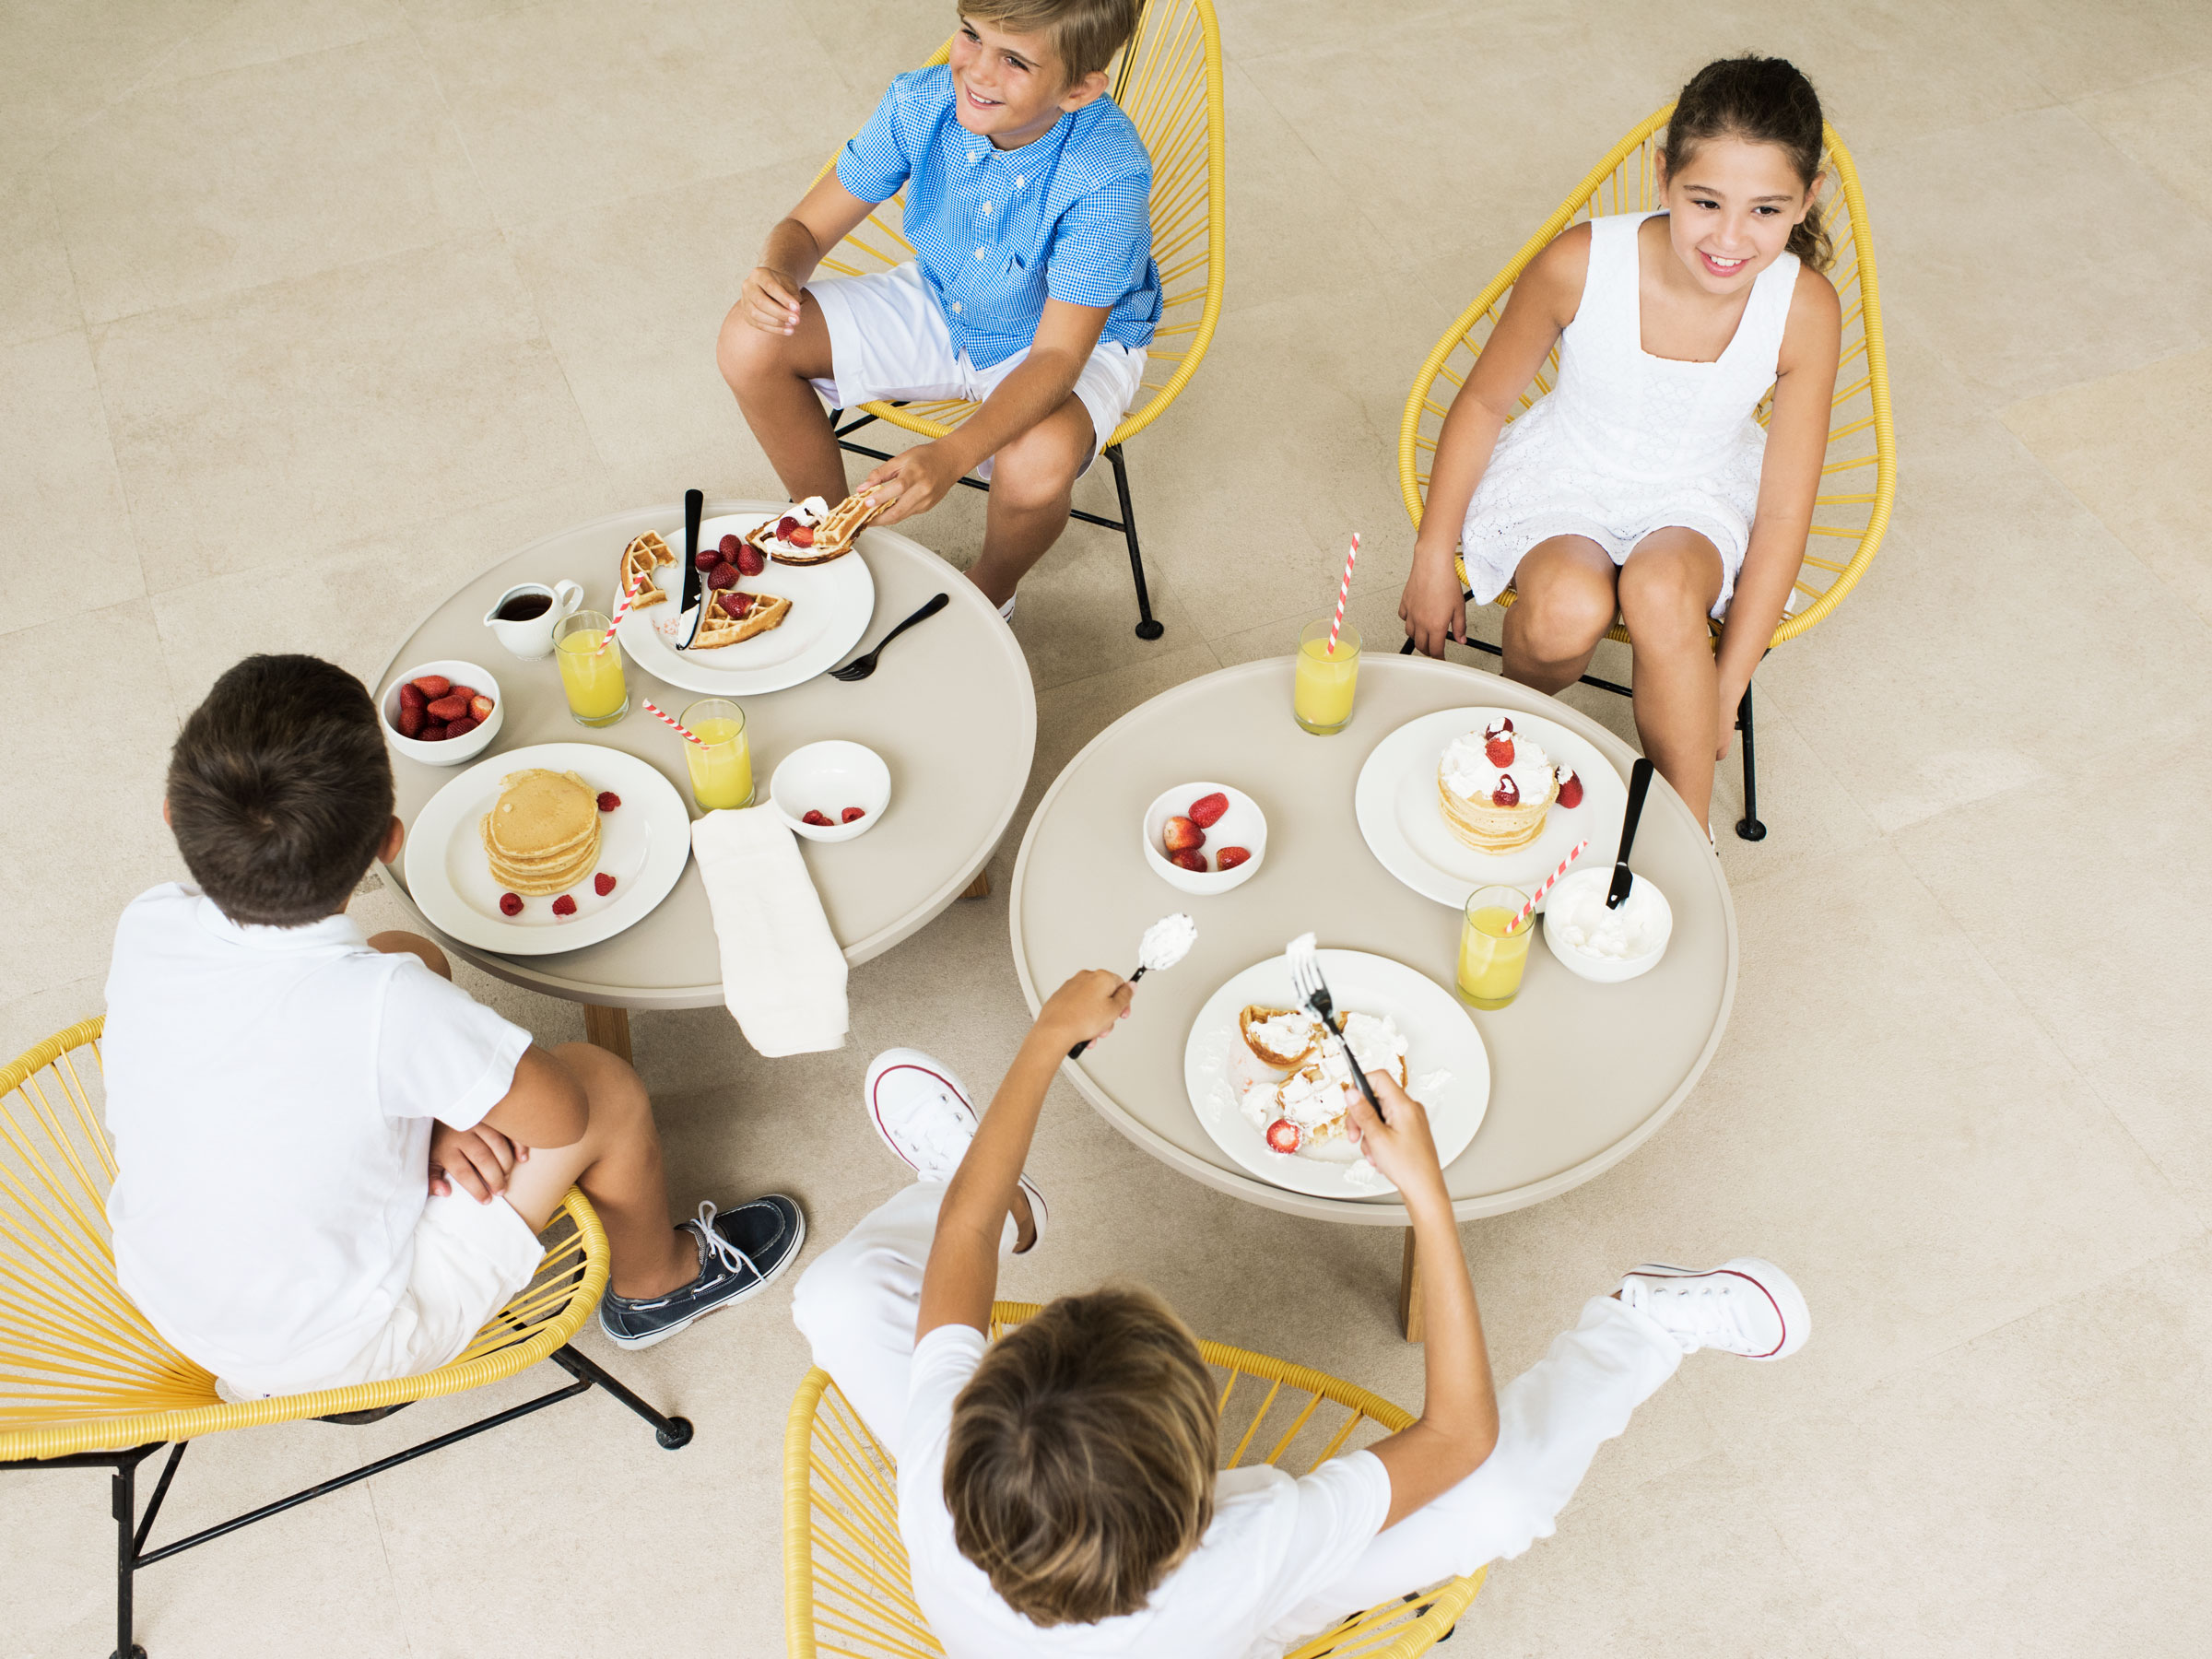 Meals for Kids at Our Cancun All Inclusive Family Resort